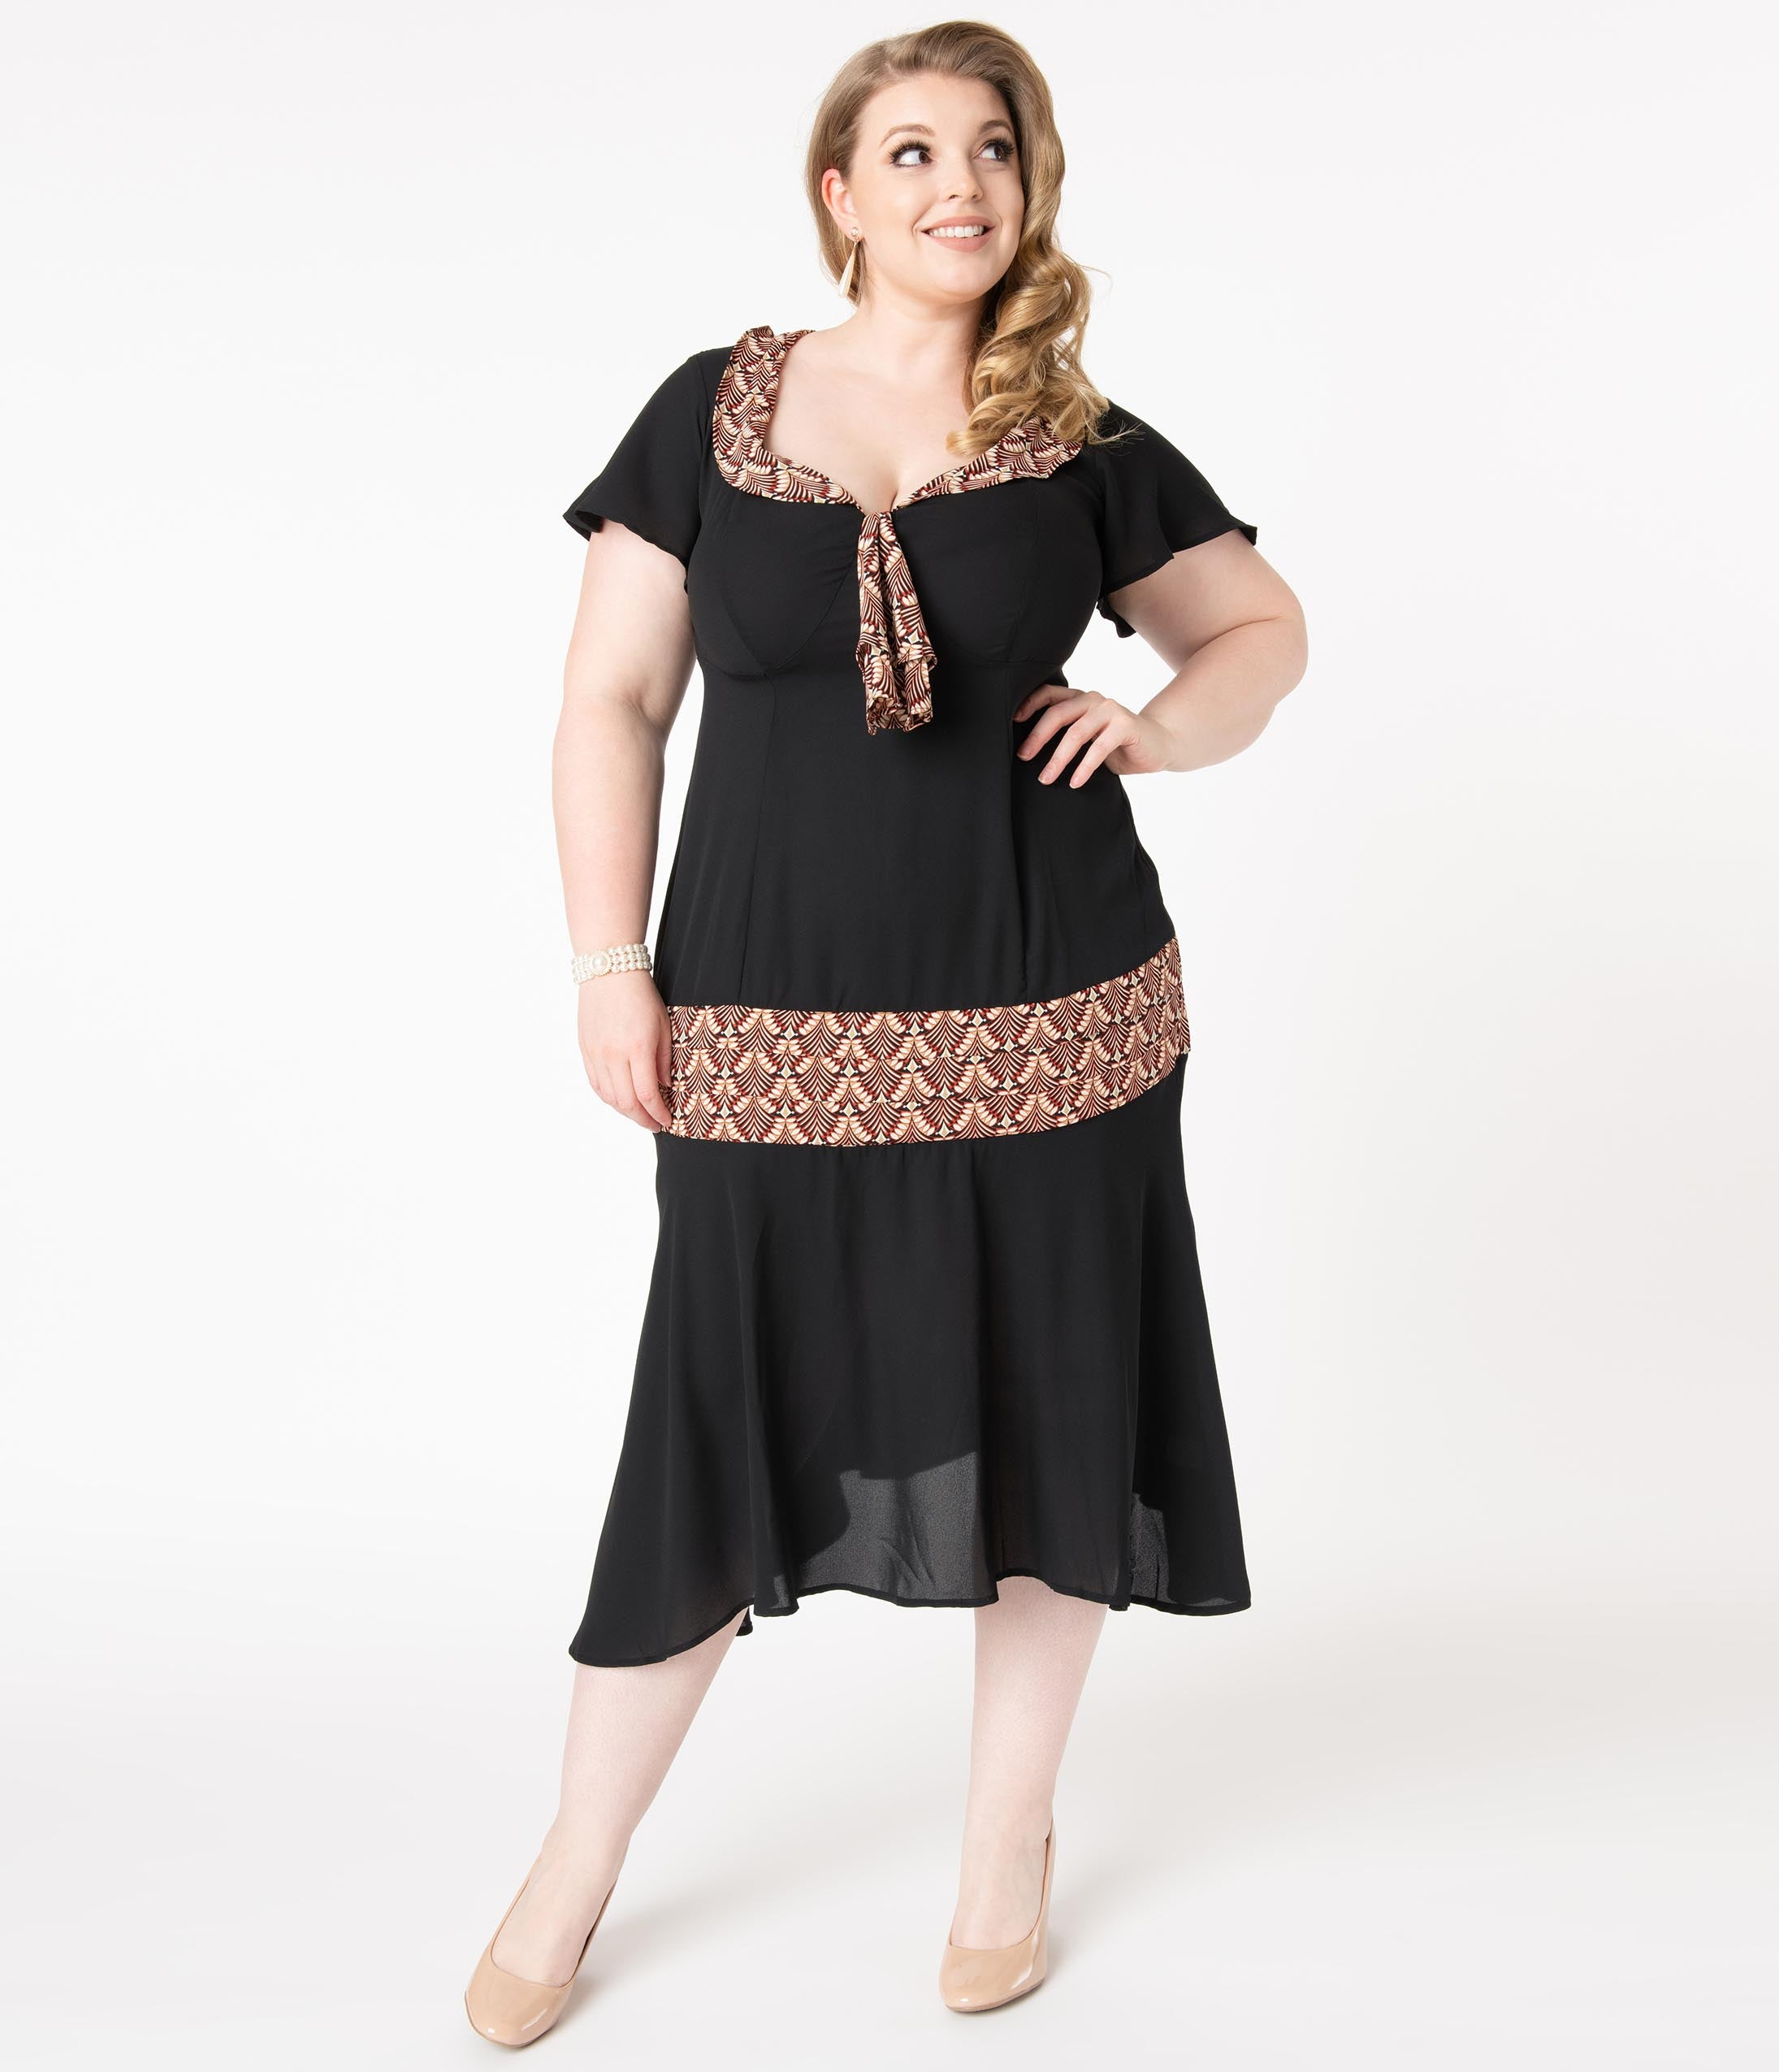 1920s Plus Size Flapper Dresses, Gatsby Dresses, Flapper Costumes Unique Vintage Plus Size 1920S Black  Deco Print Wilshire Flapper Day Dress $78.00 AT vintagedancer.com